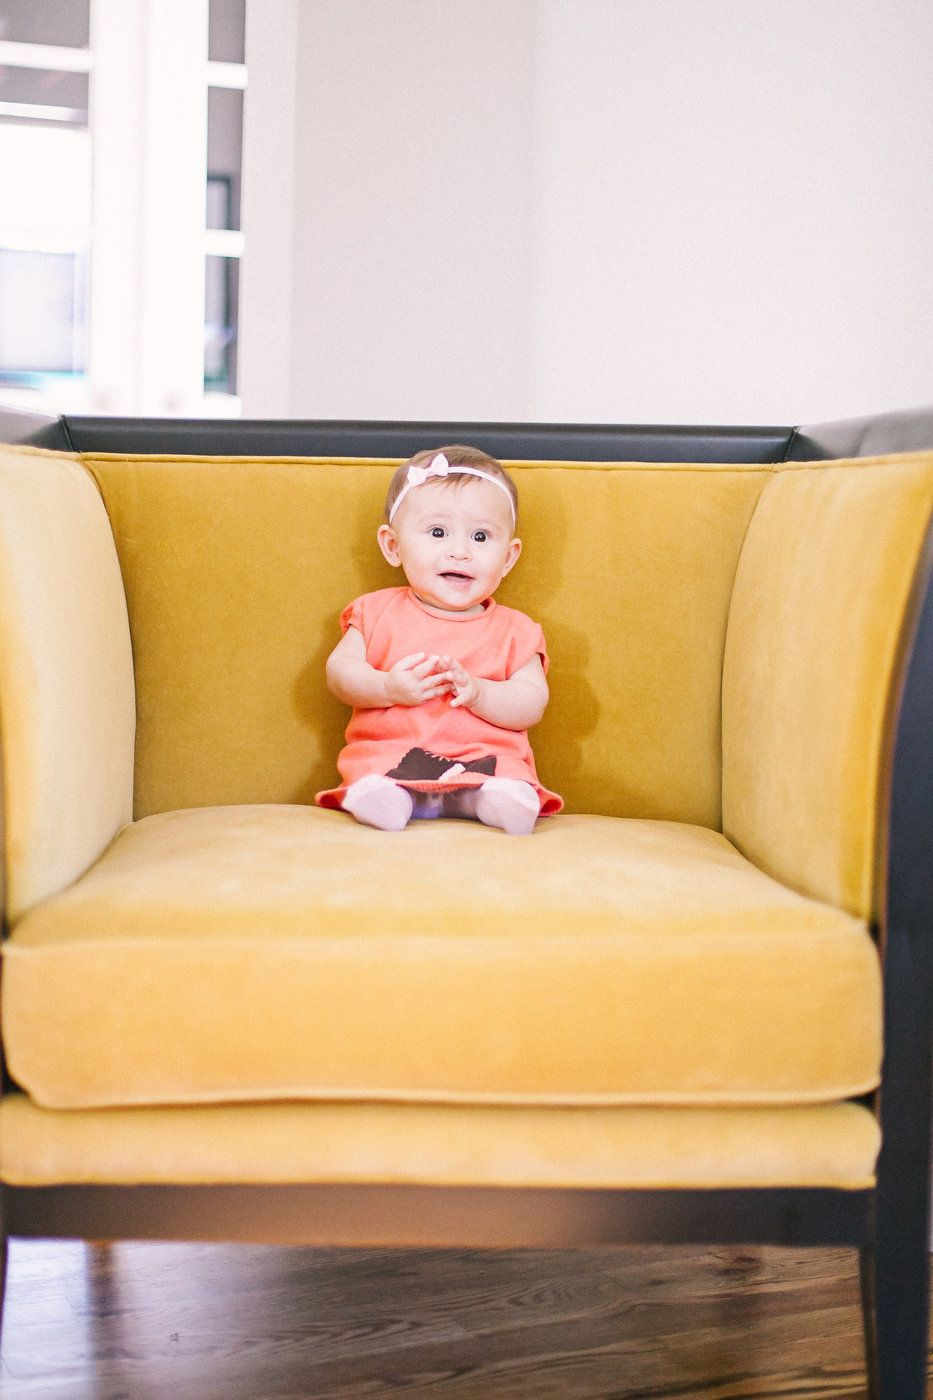 Such a big personality for such a small chair Photo By Sara Lynn, www.saralynnphoto.com